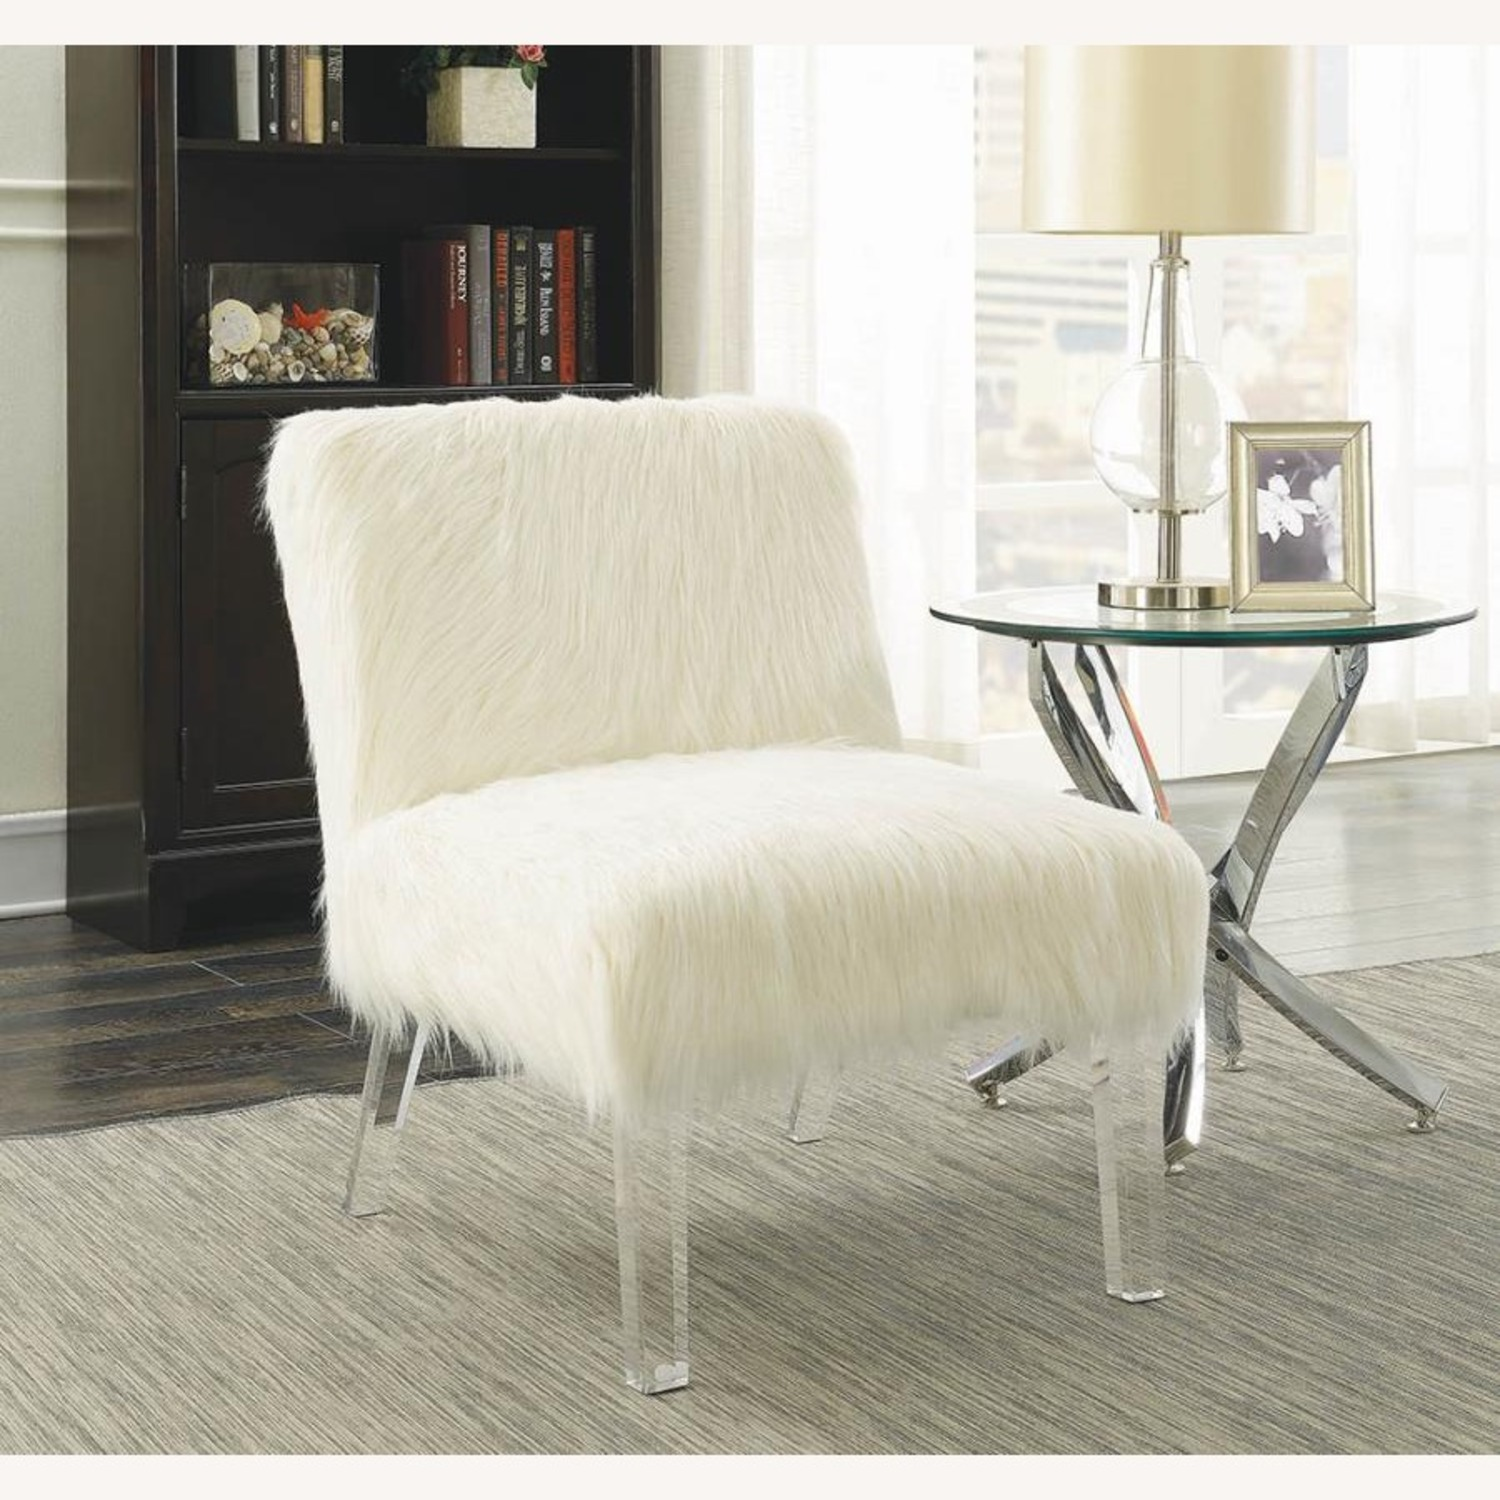 Accent Chair In Glamorous White Faux Sheepskin - image-4